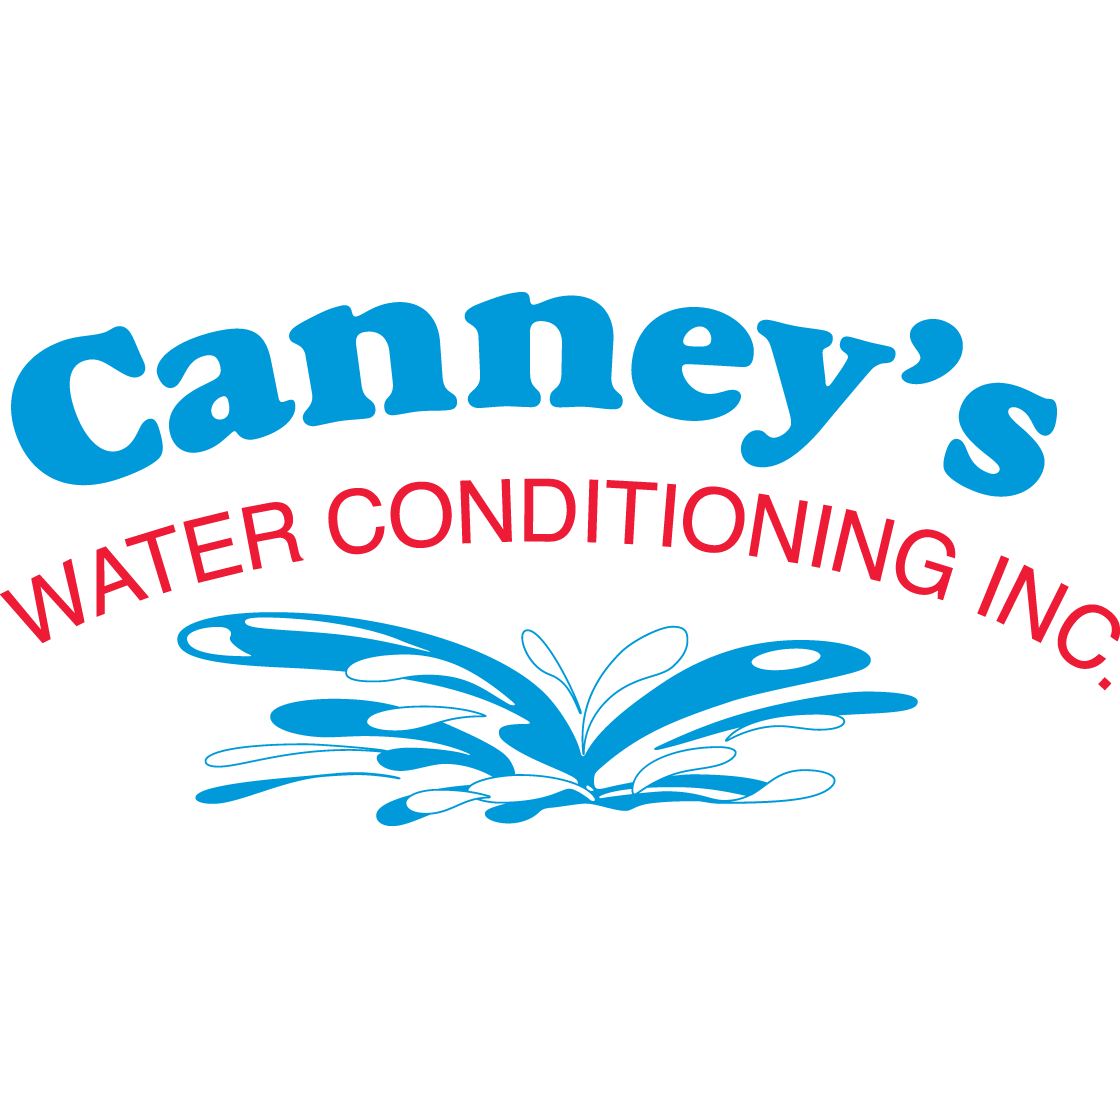 Canney S Water Conditioning Coupons Near Me In Kalamazoo